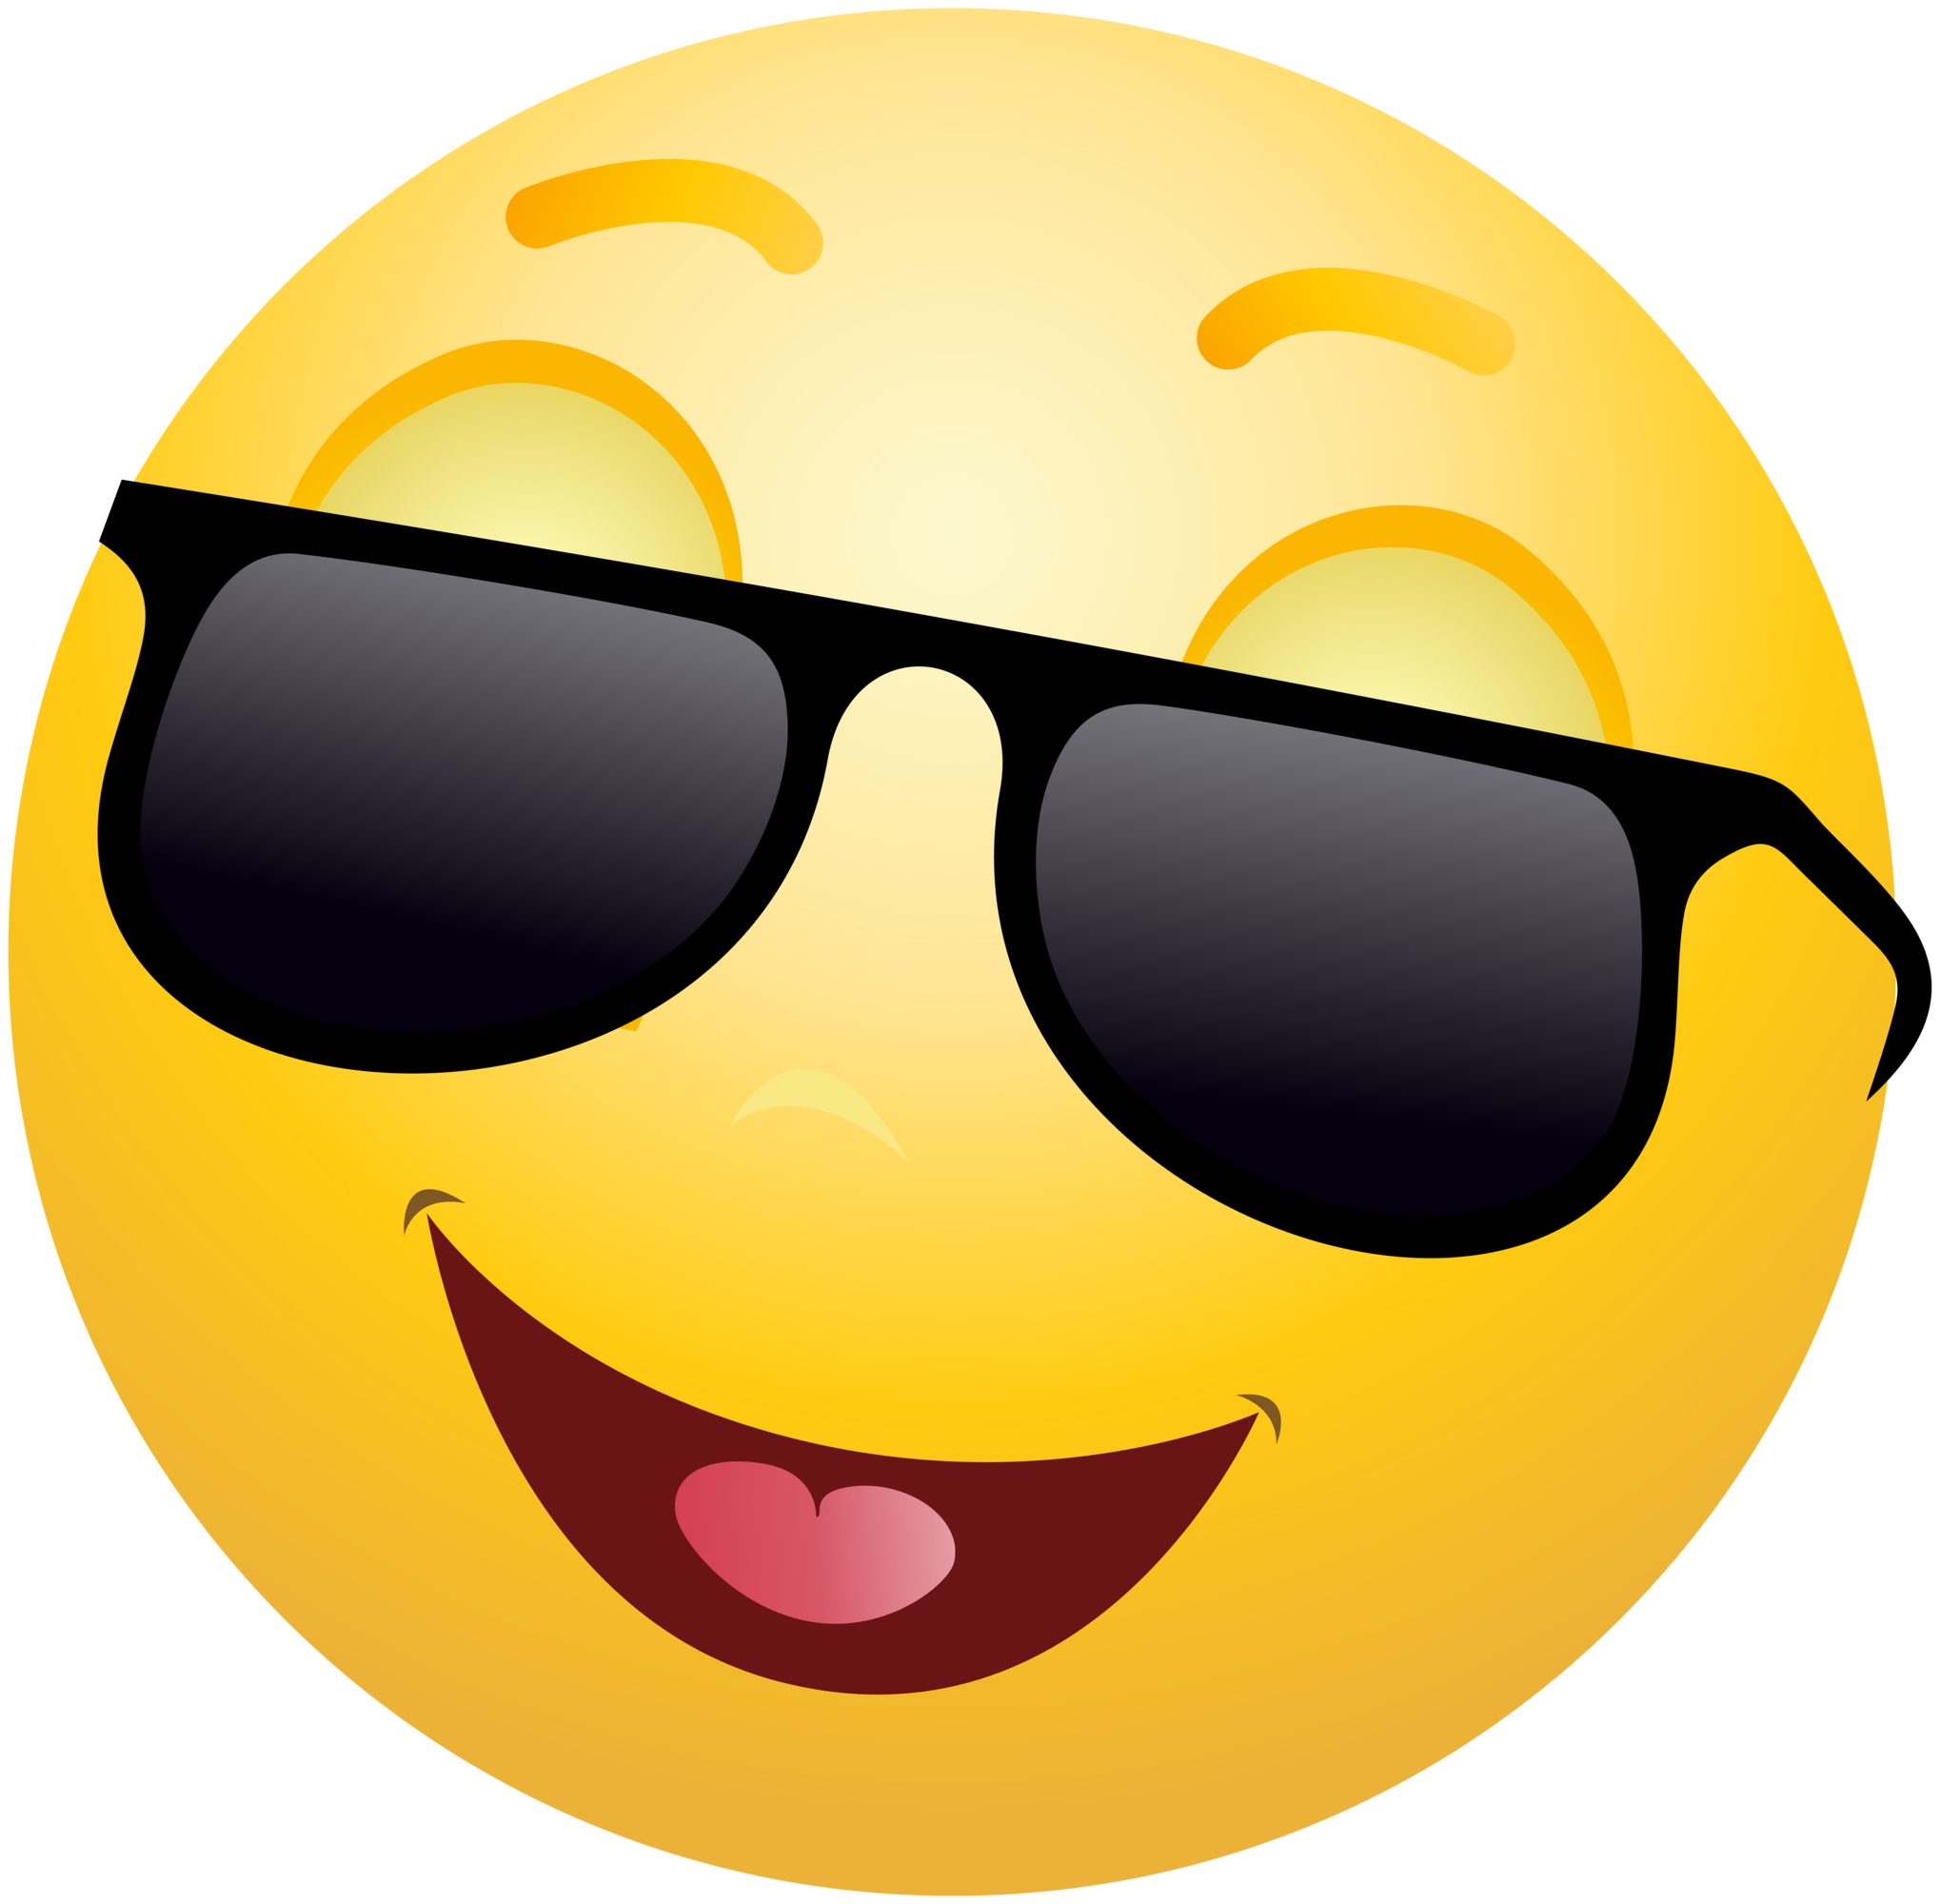 Cool emoji png. Smiling emoticon with sunglasses